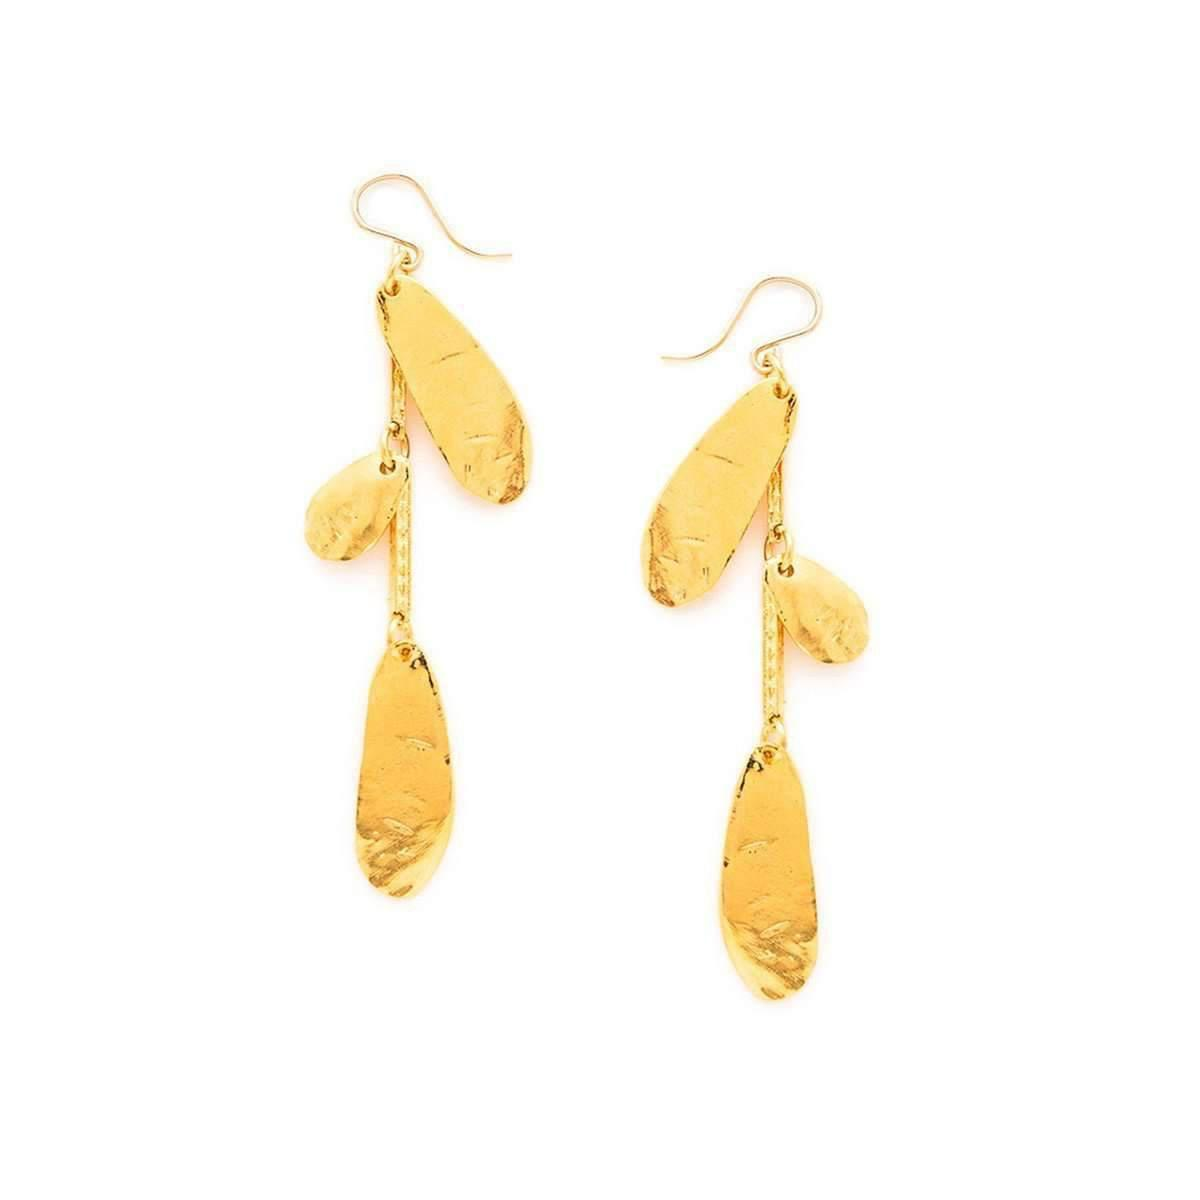 Devon Leigh Hammered Oval Statement Drop Earrings IaOqwfDt